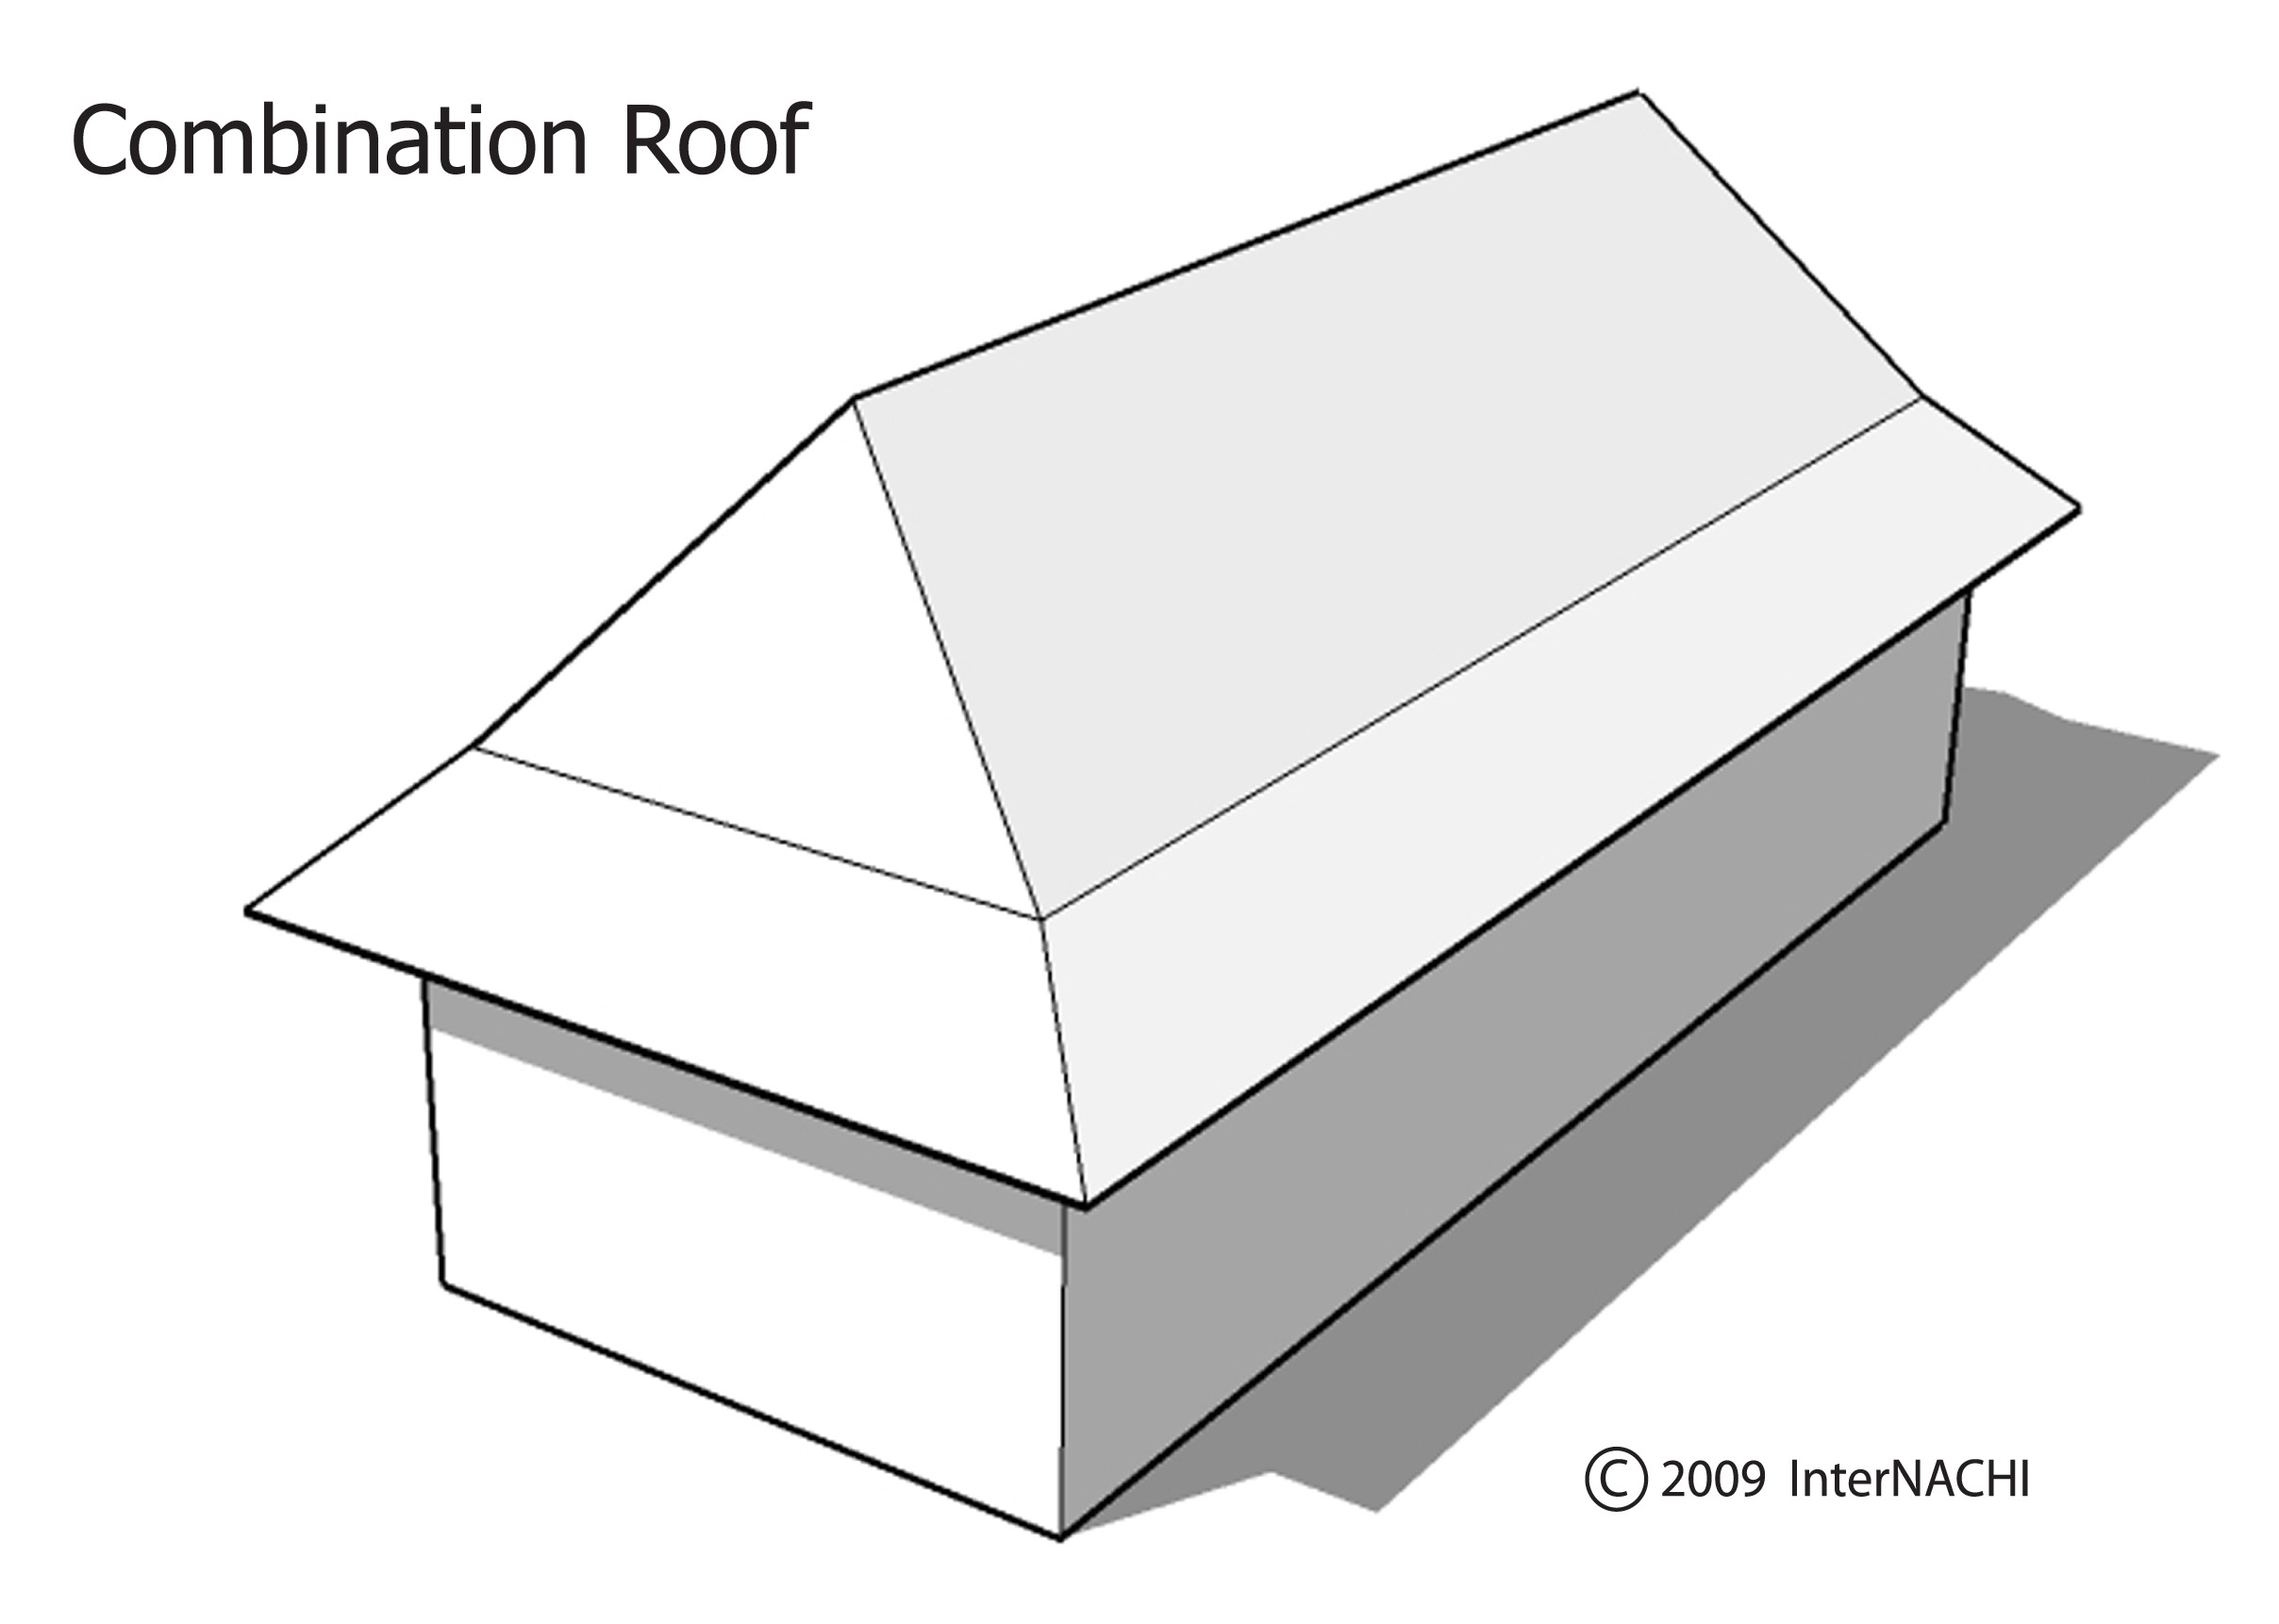 Combination roof.